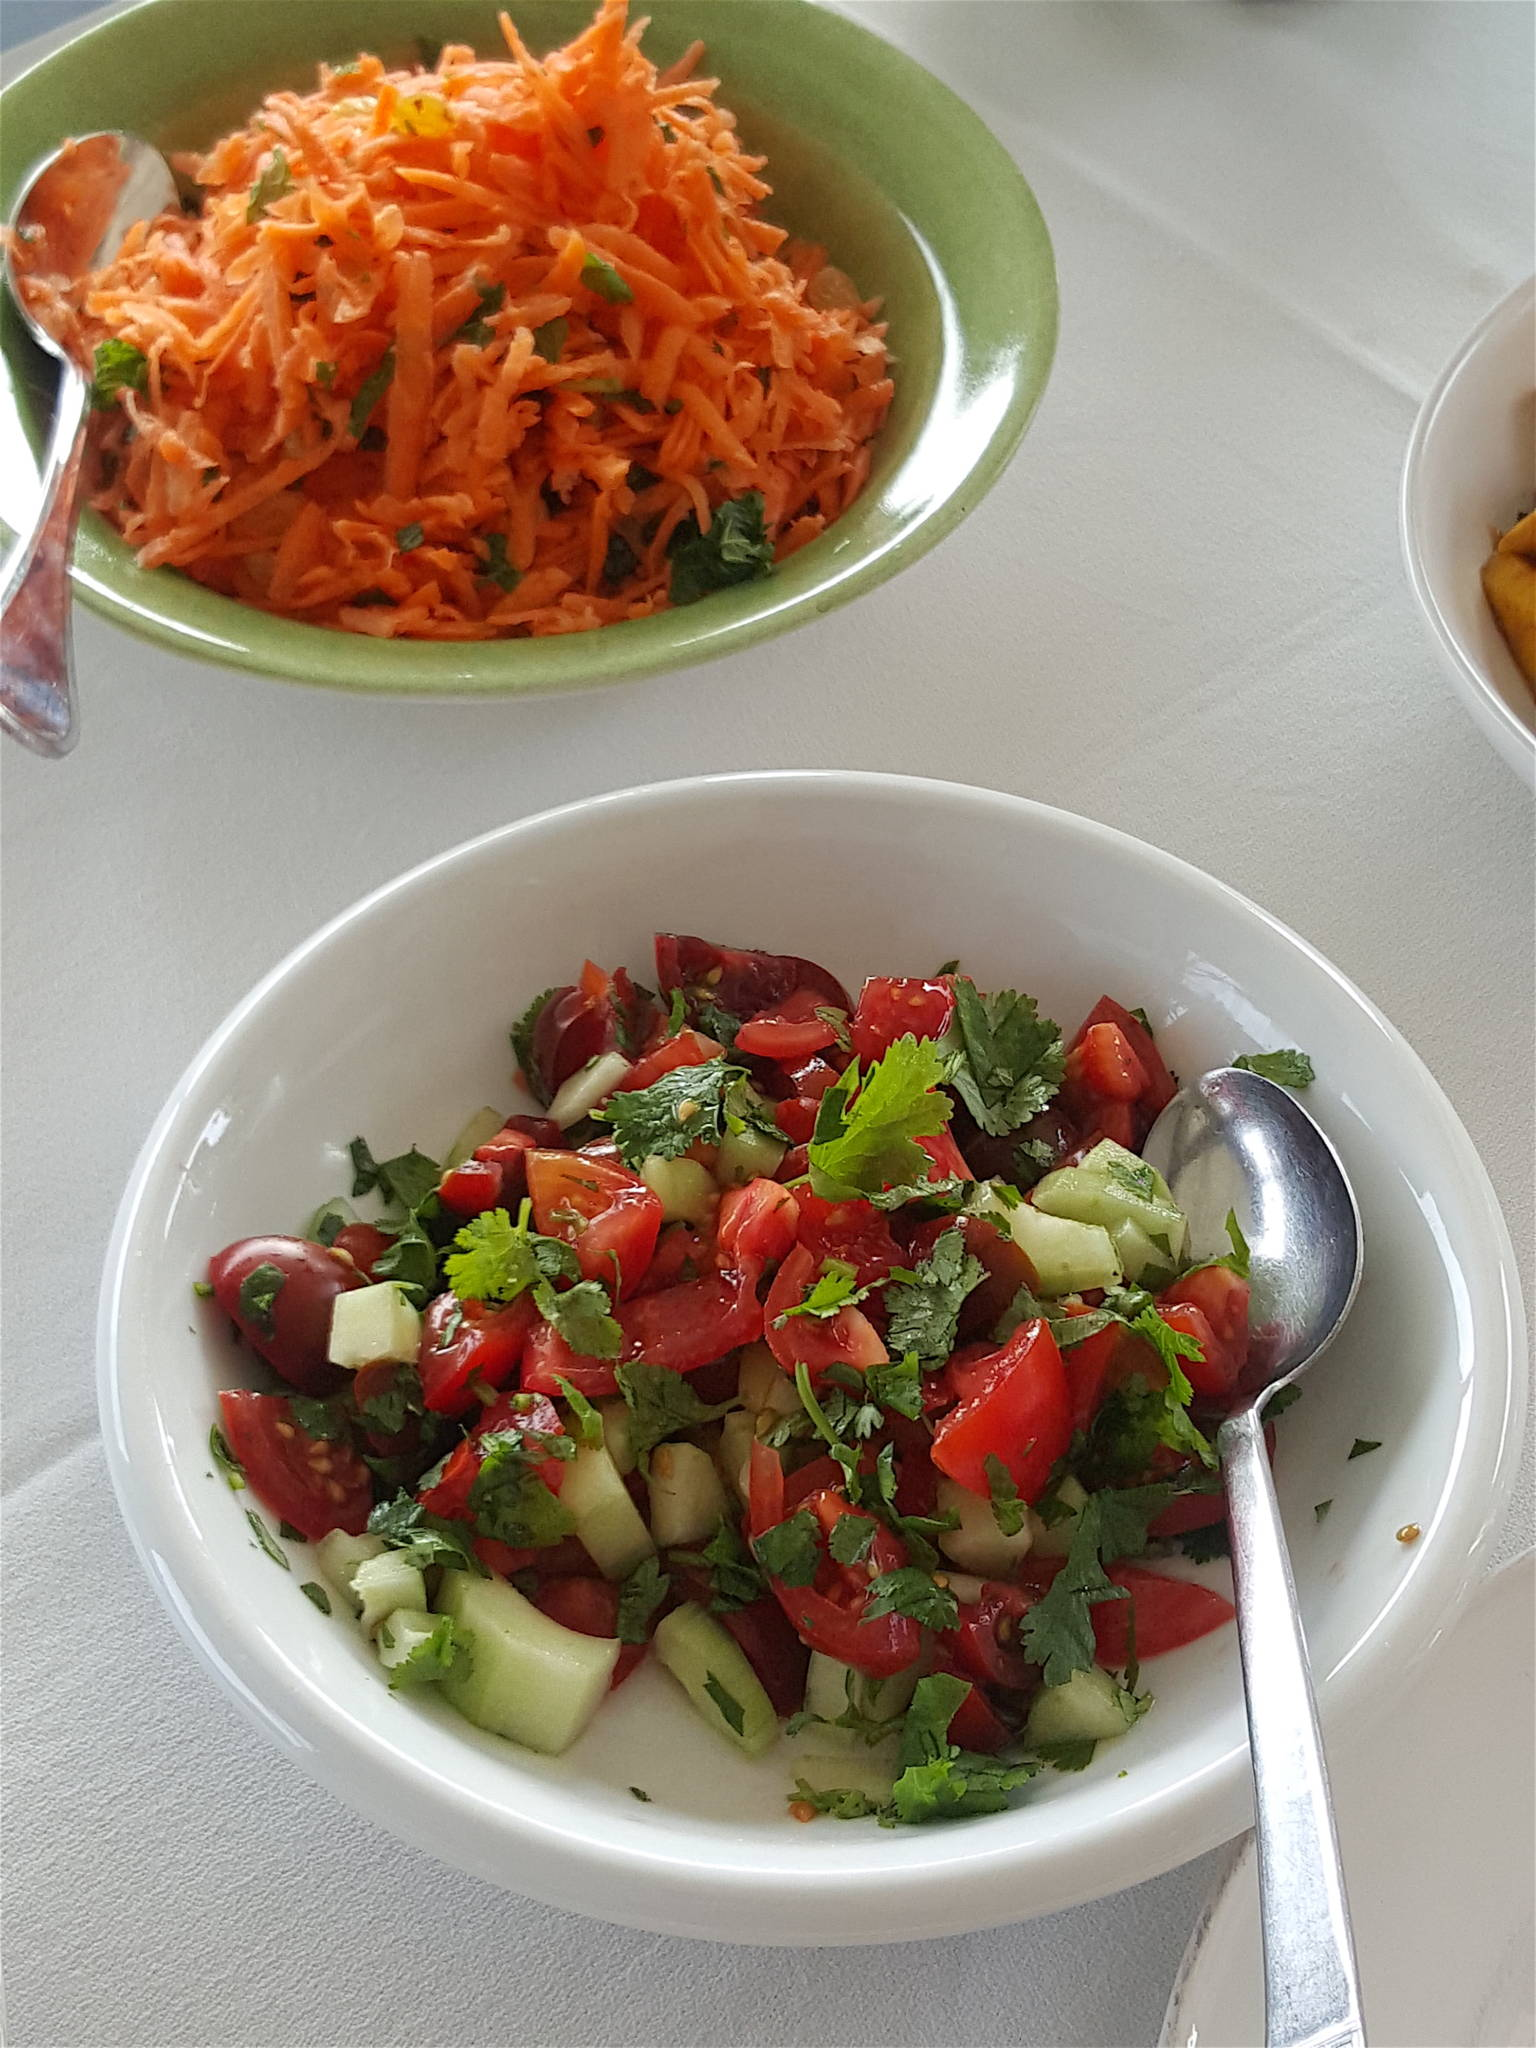 Gingered Carrot Salad